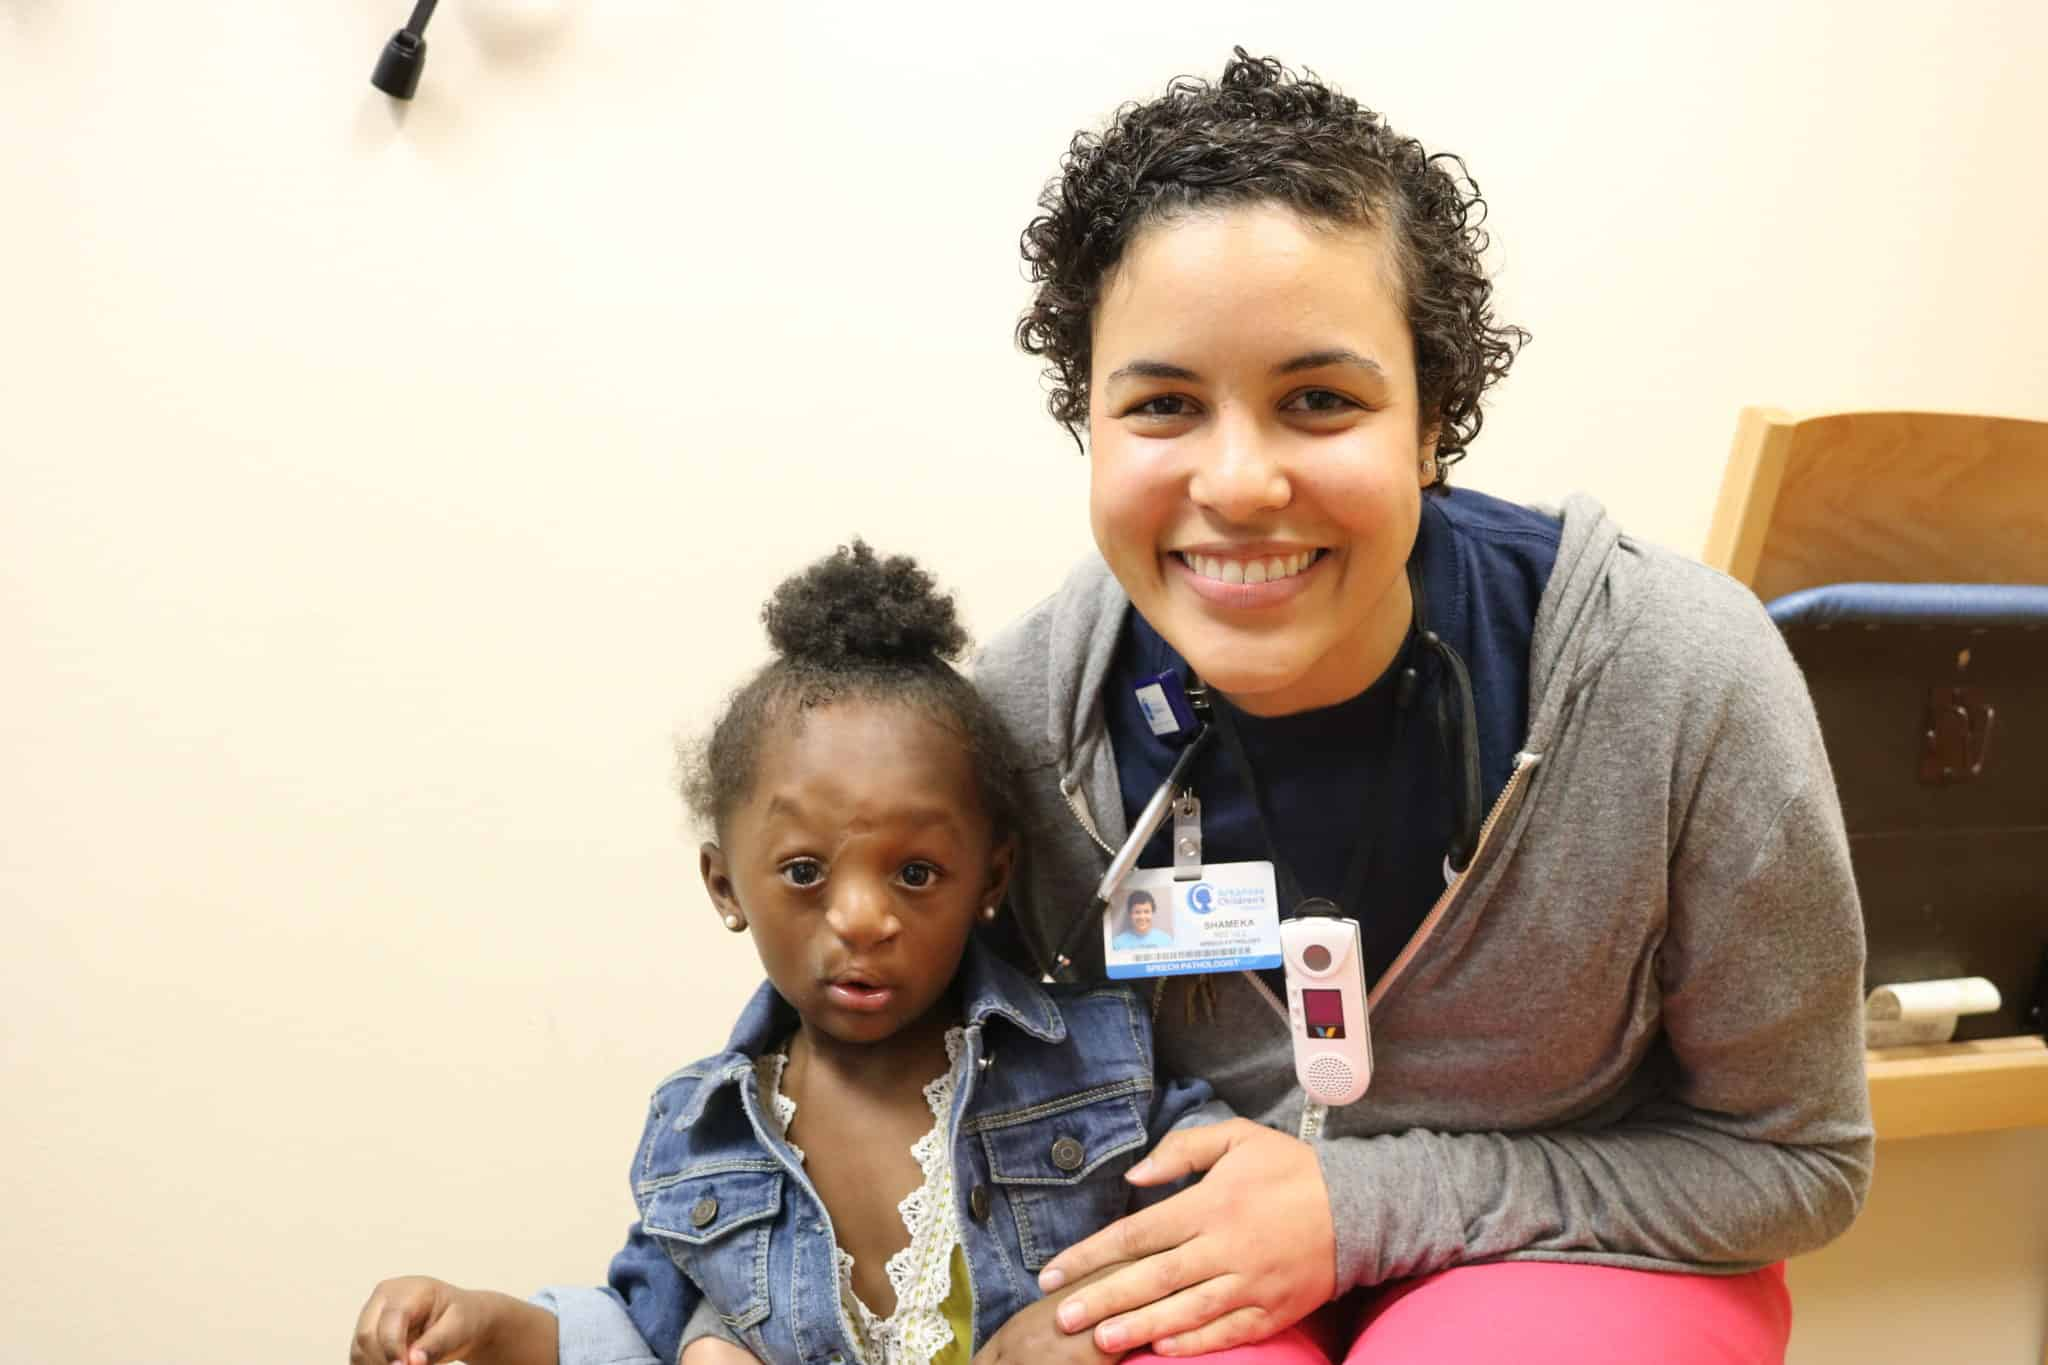 Patient 2 at 2 years old with speech pathologist Shameka Reeves.